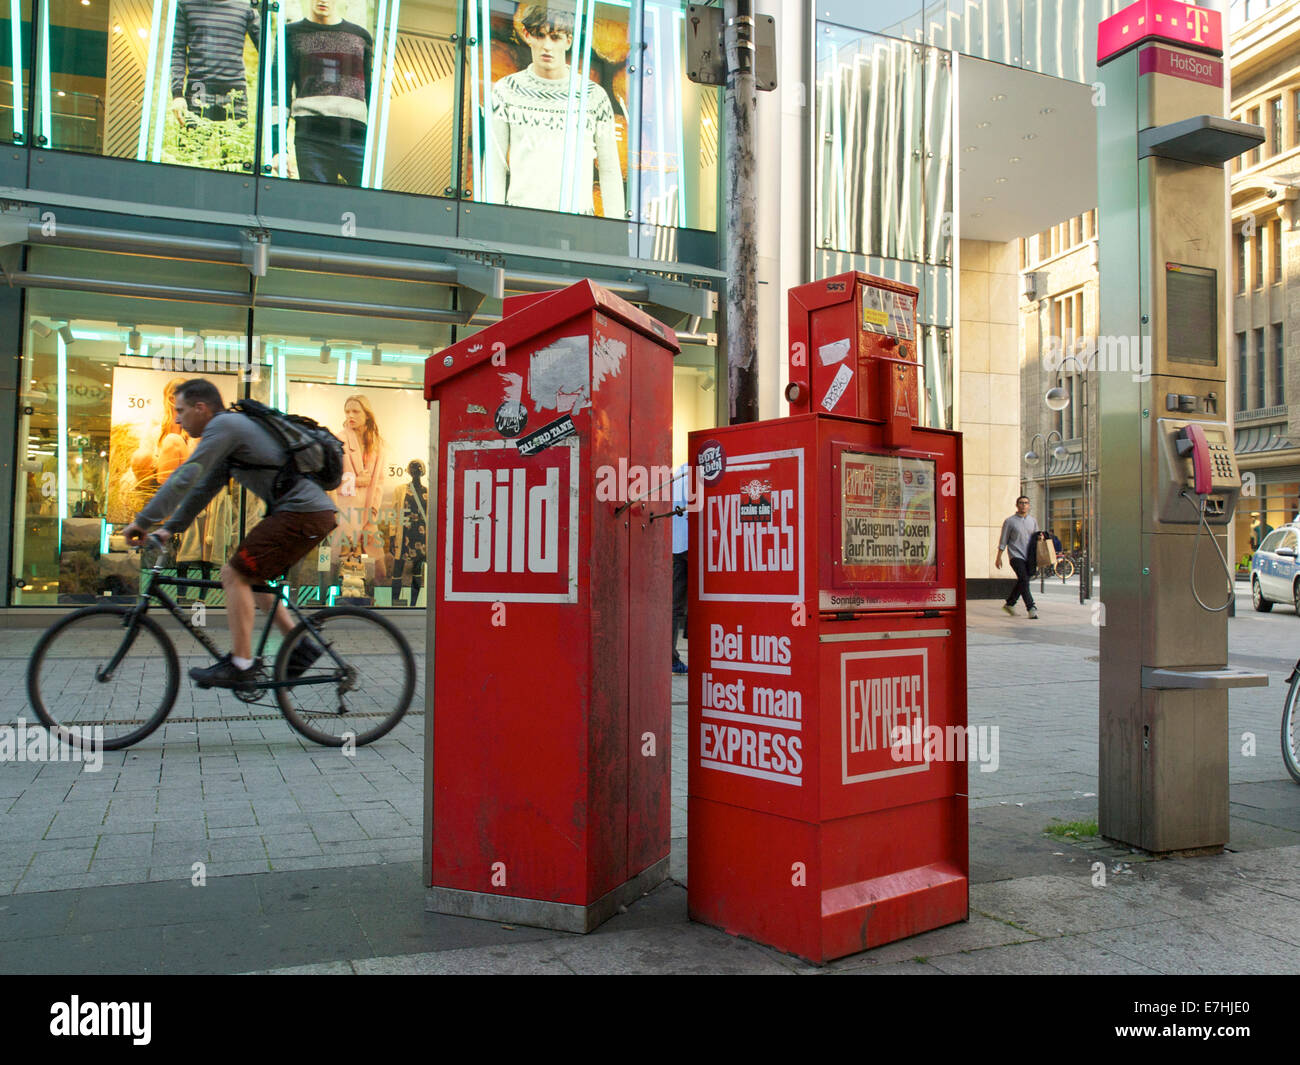 Newspaper vending machines in the street in Cologne, Germany with T-Mobile hotspot pole and cyclist - Stock Image